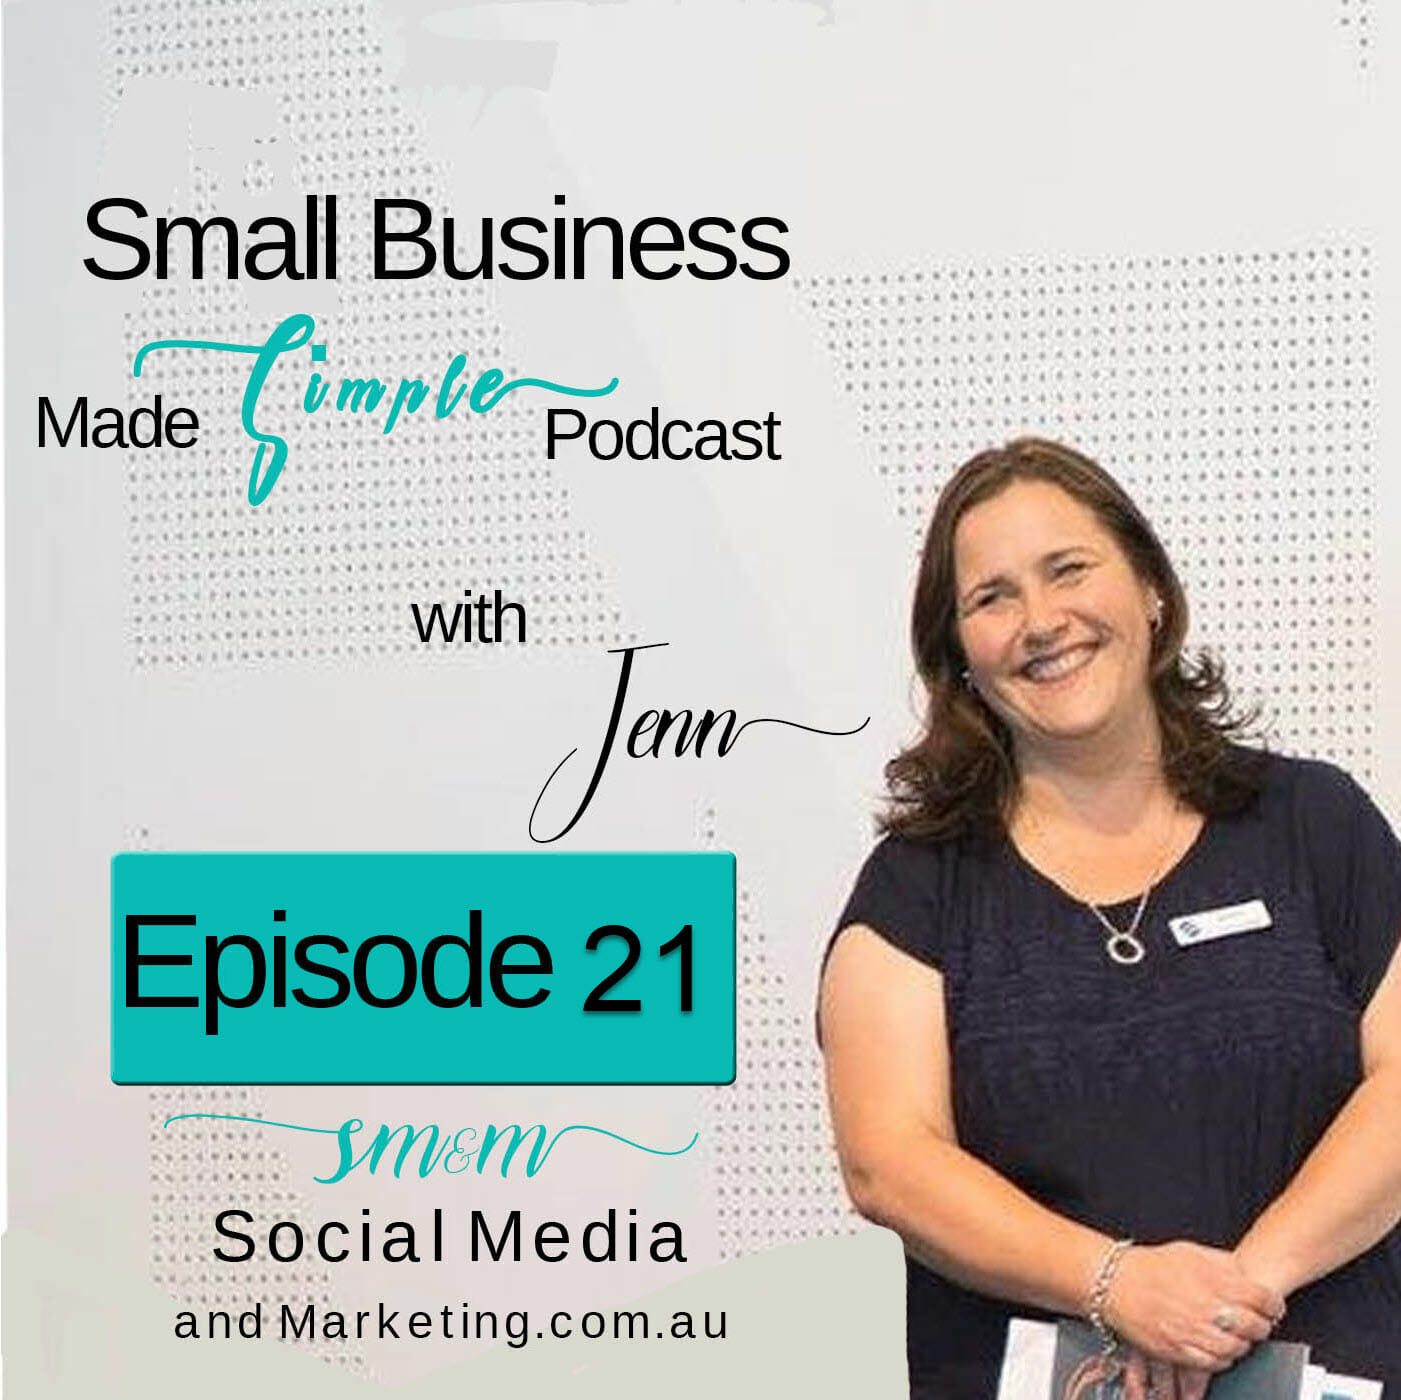 EPISODE 21 – 7 WAYS TO MARKET YOUR BUSINESS ON A SHOESTRING